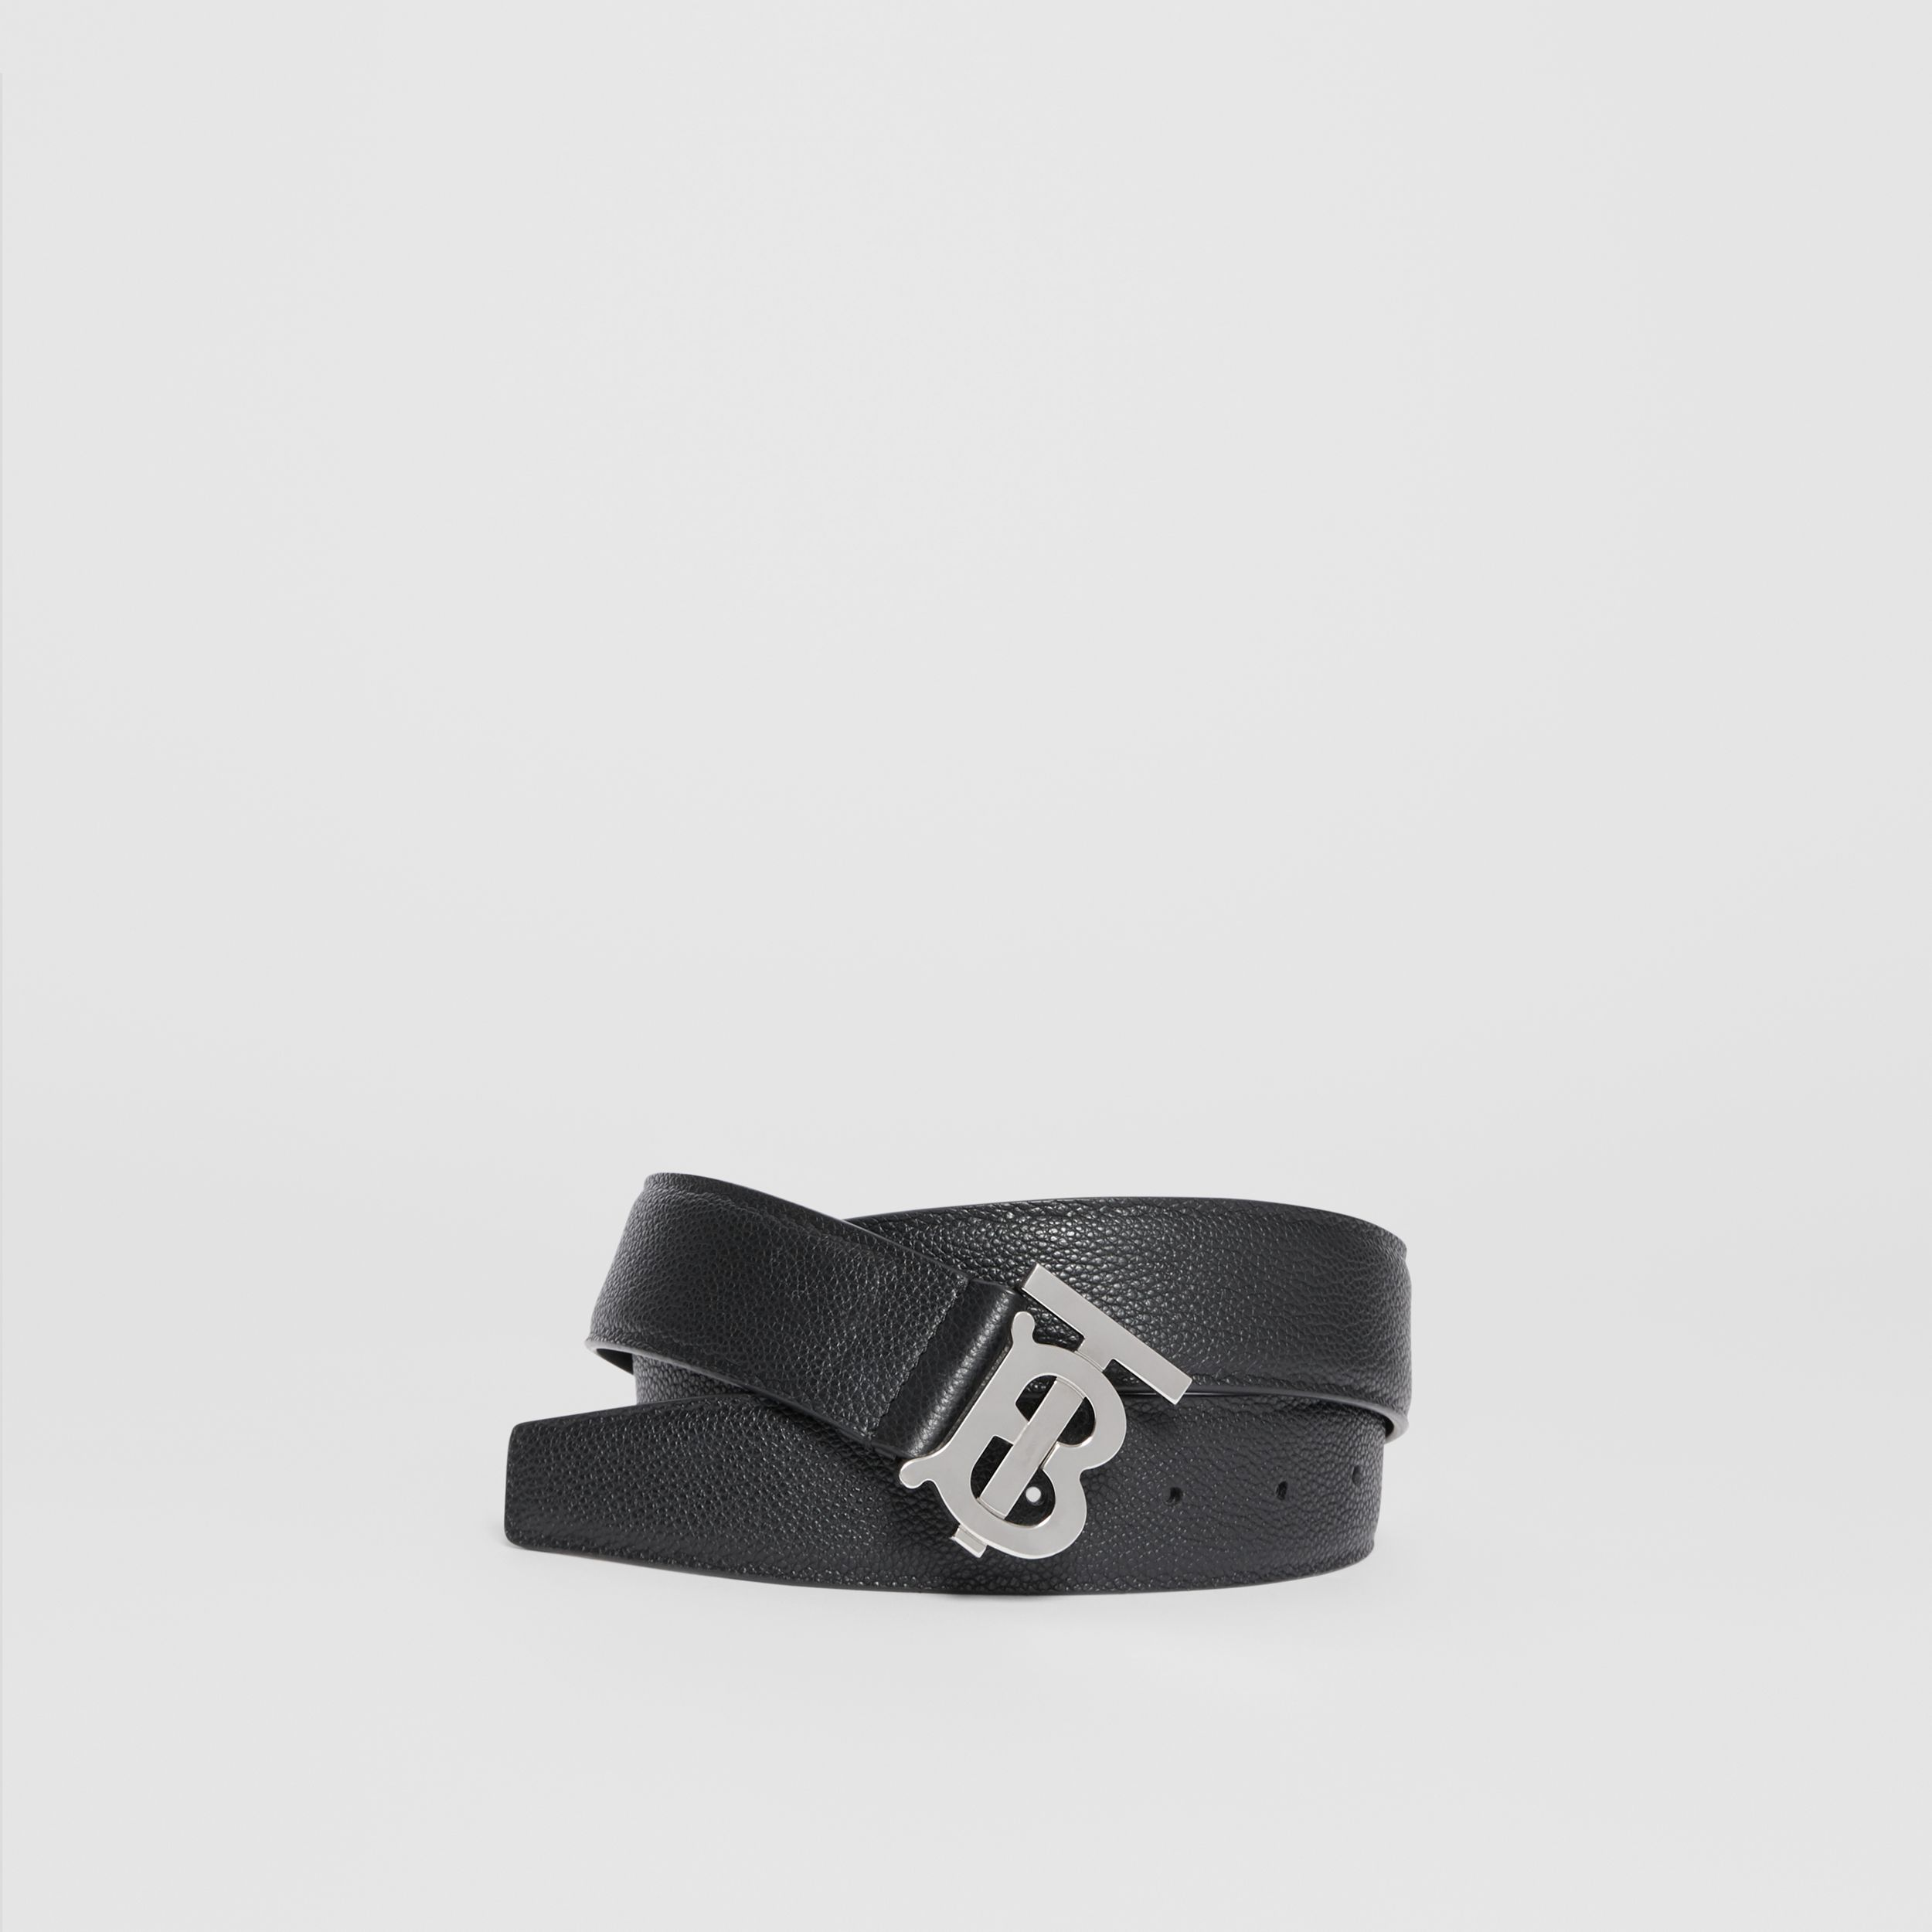 Monogram Motif Grainy Leather Belt in Black - Men | Burberry Singapore - 1